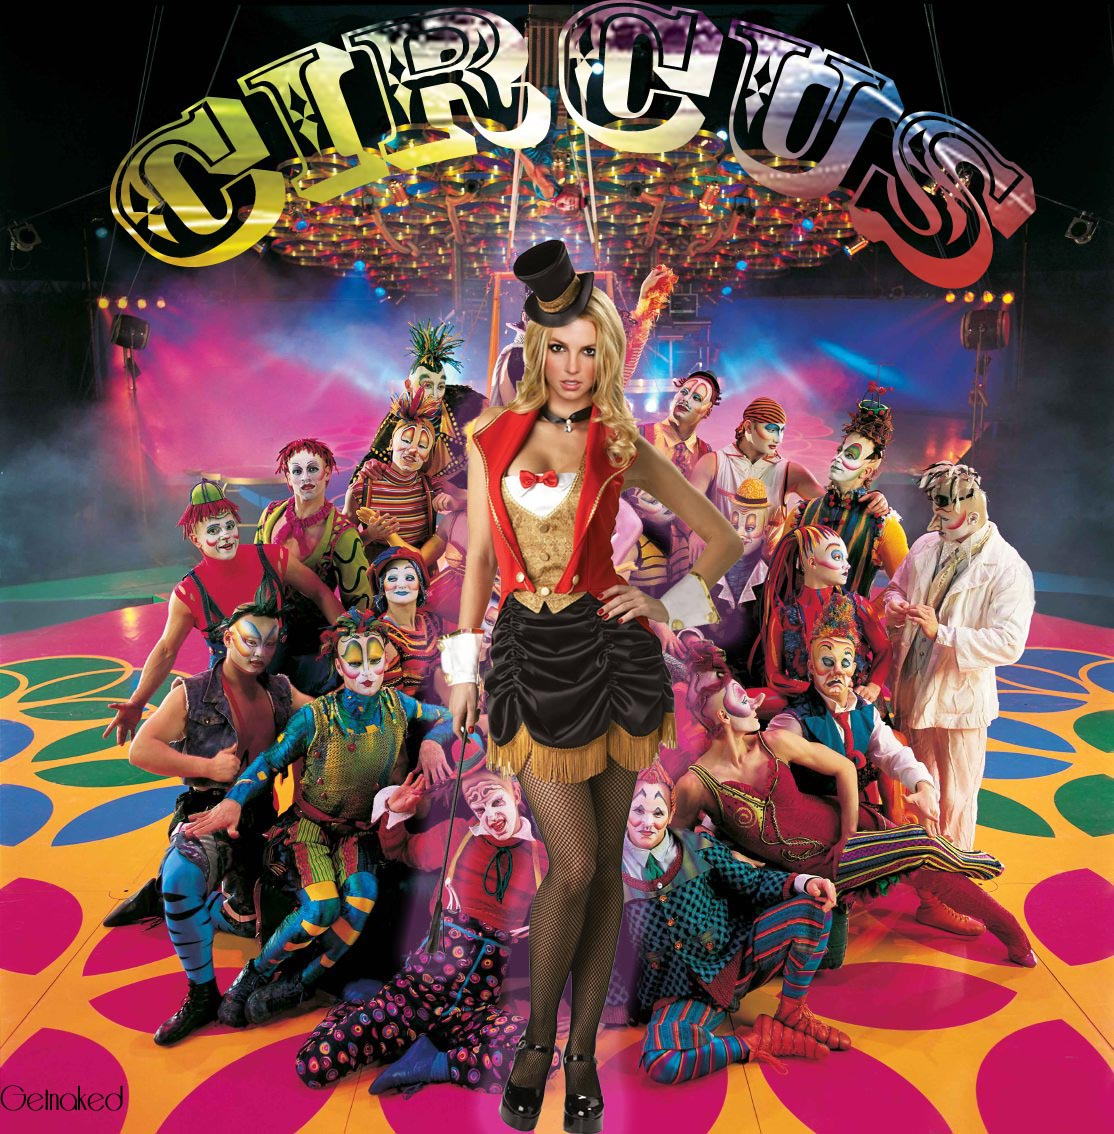 Album Circus de Britney Spears